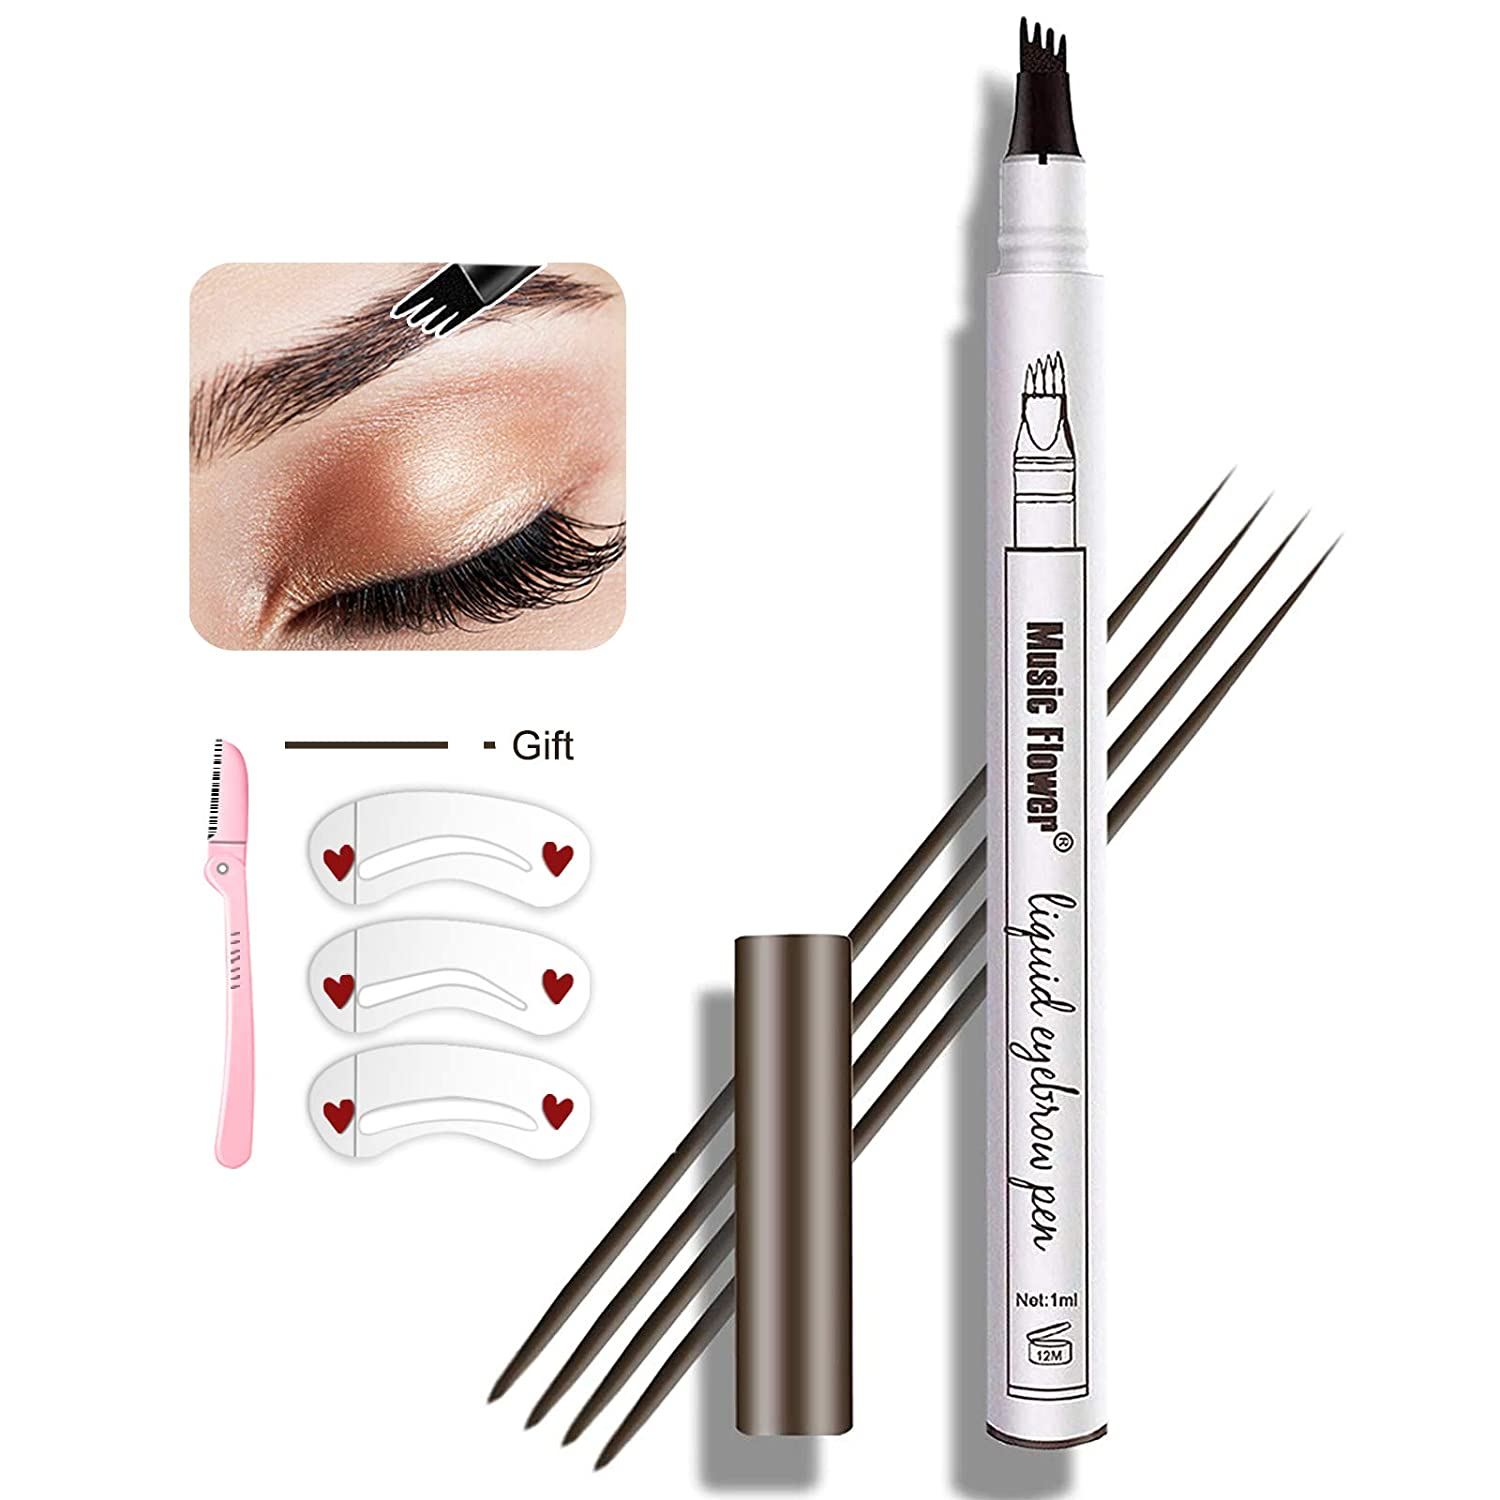 MoonKong 4 Point Waterproof Eye Brown Makeup Eyebrow Pen $9. Coupon